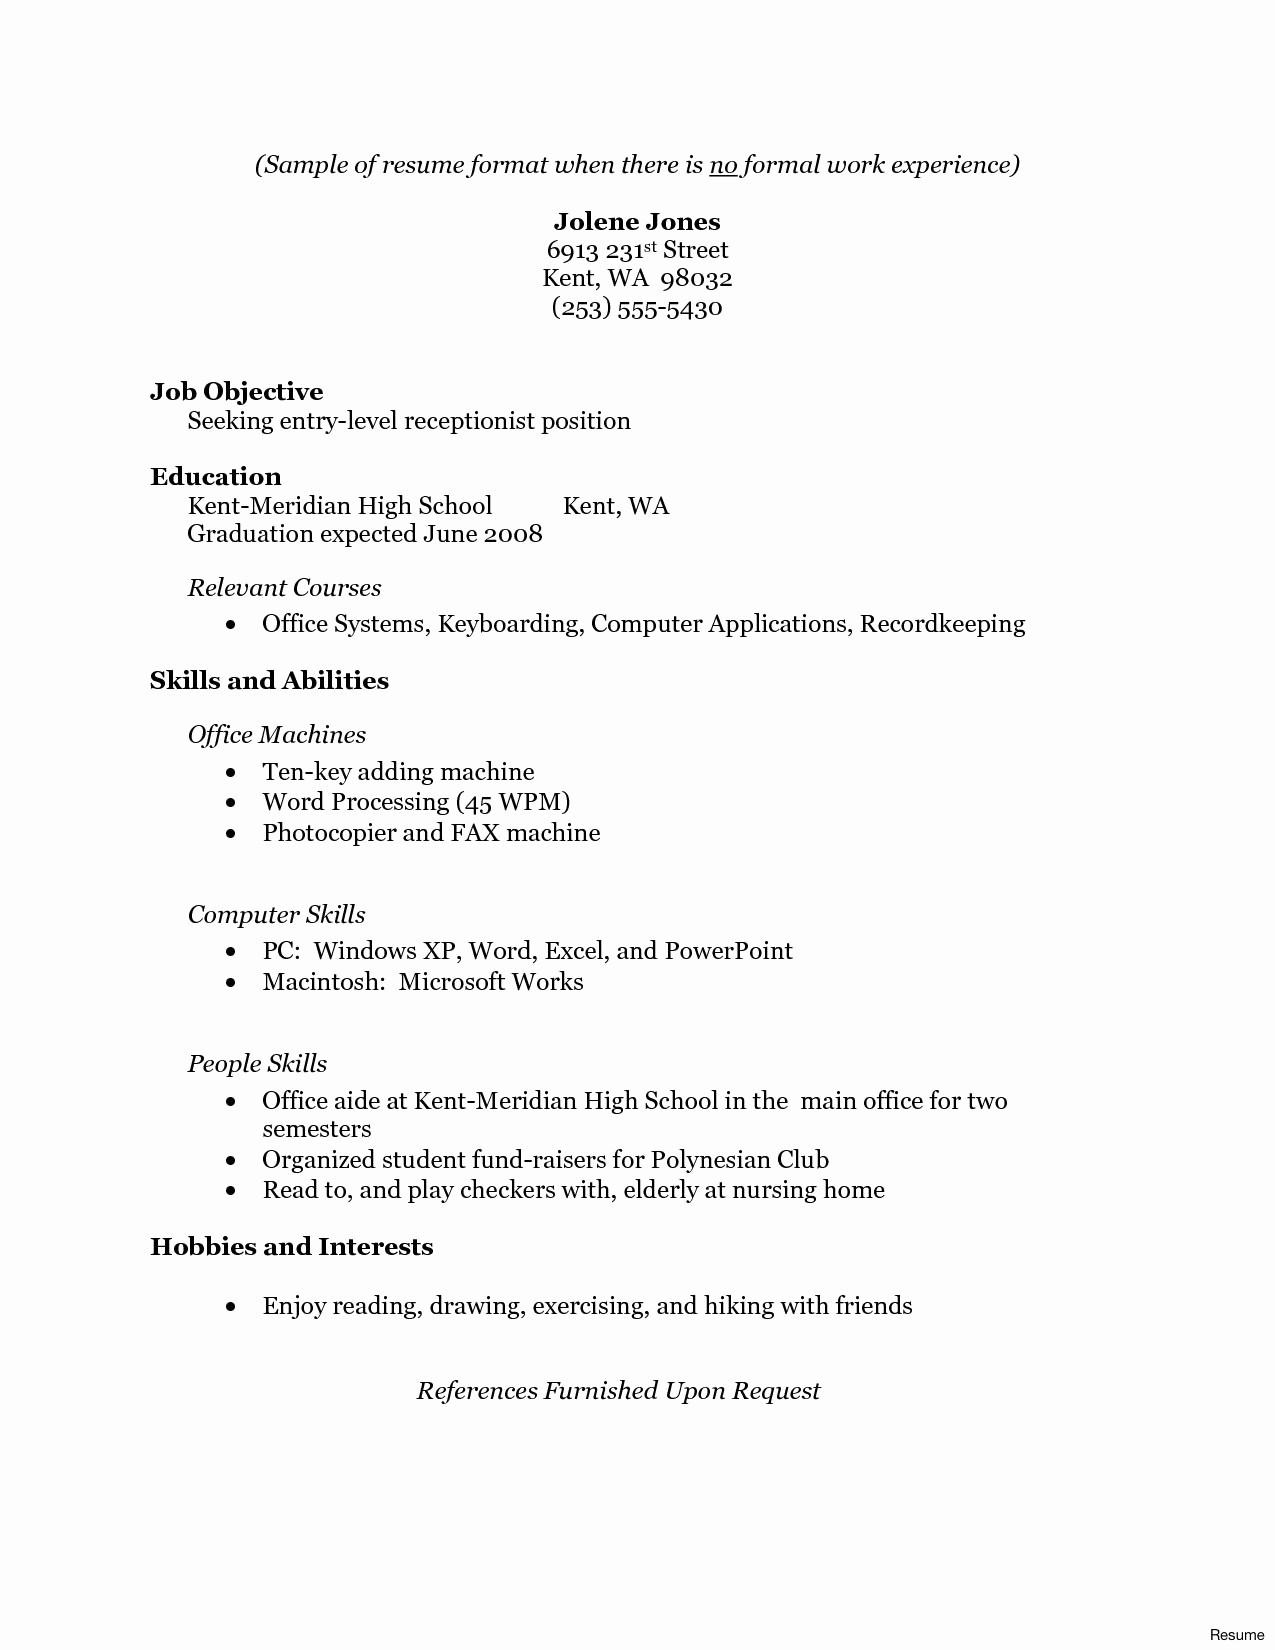 Law School Resume Template Word - Resume Professional Summary Examples Awesome Resume for Law School